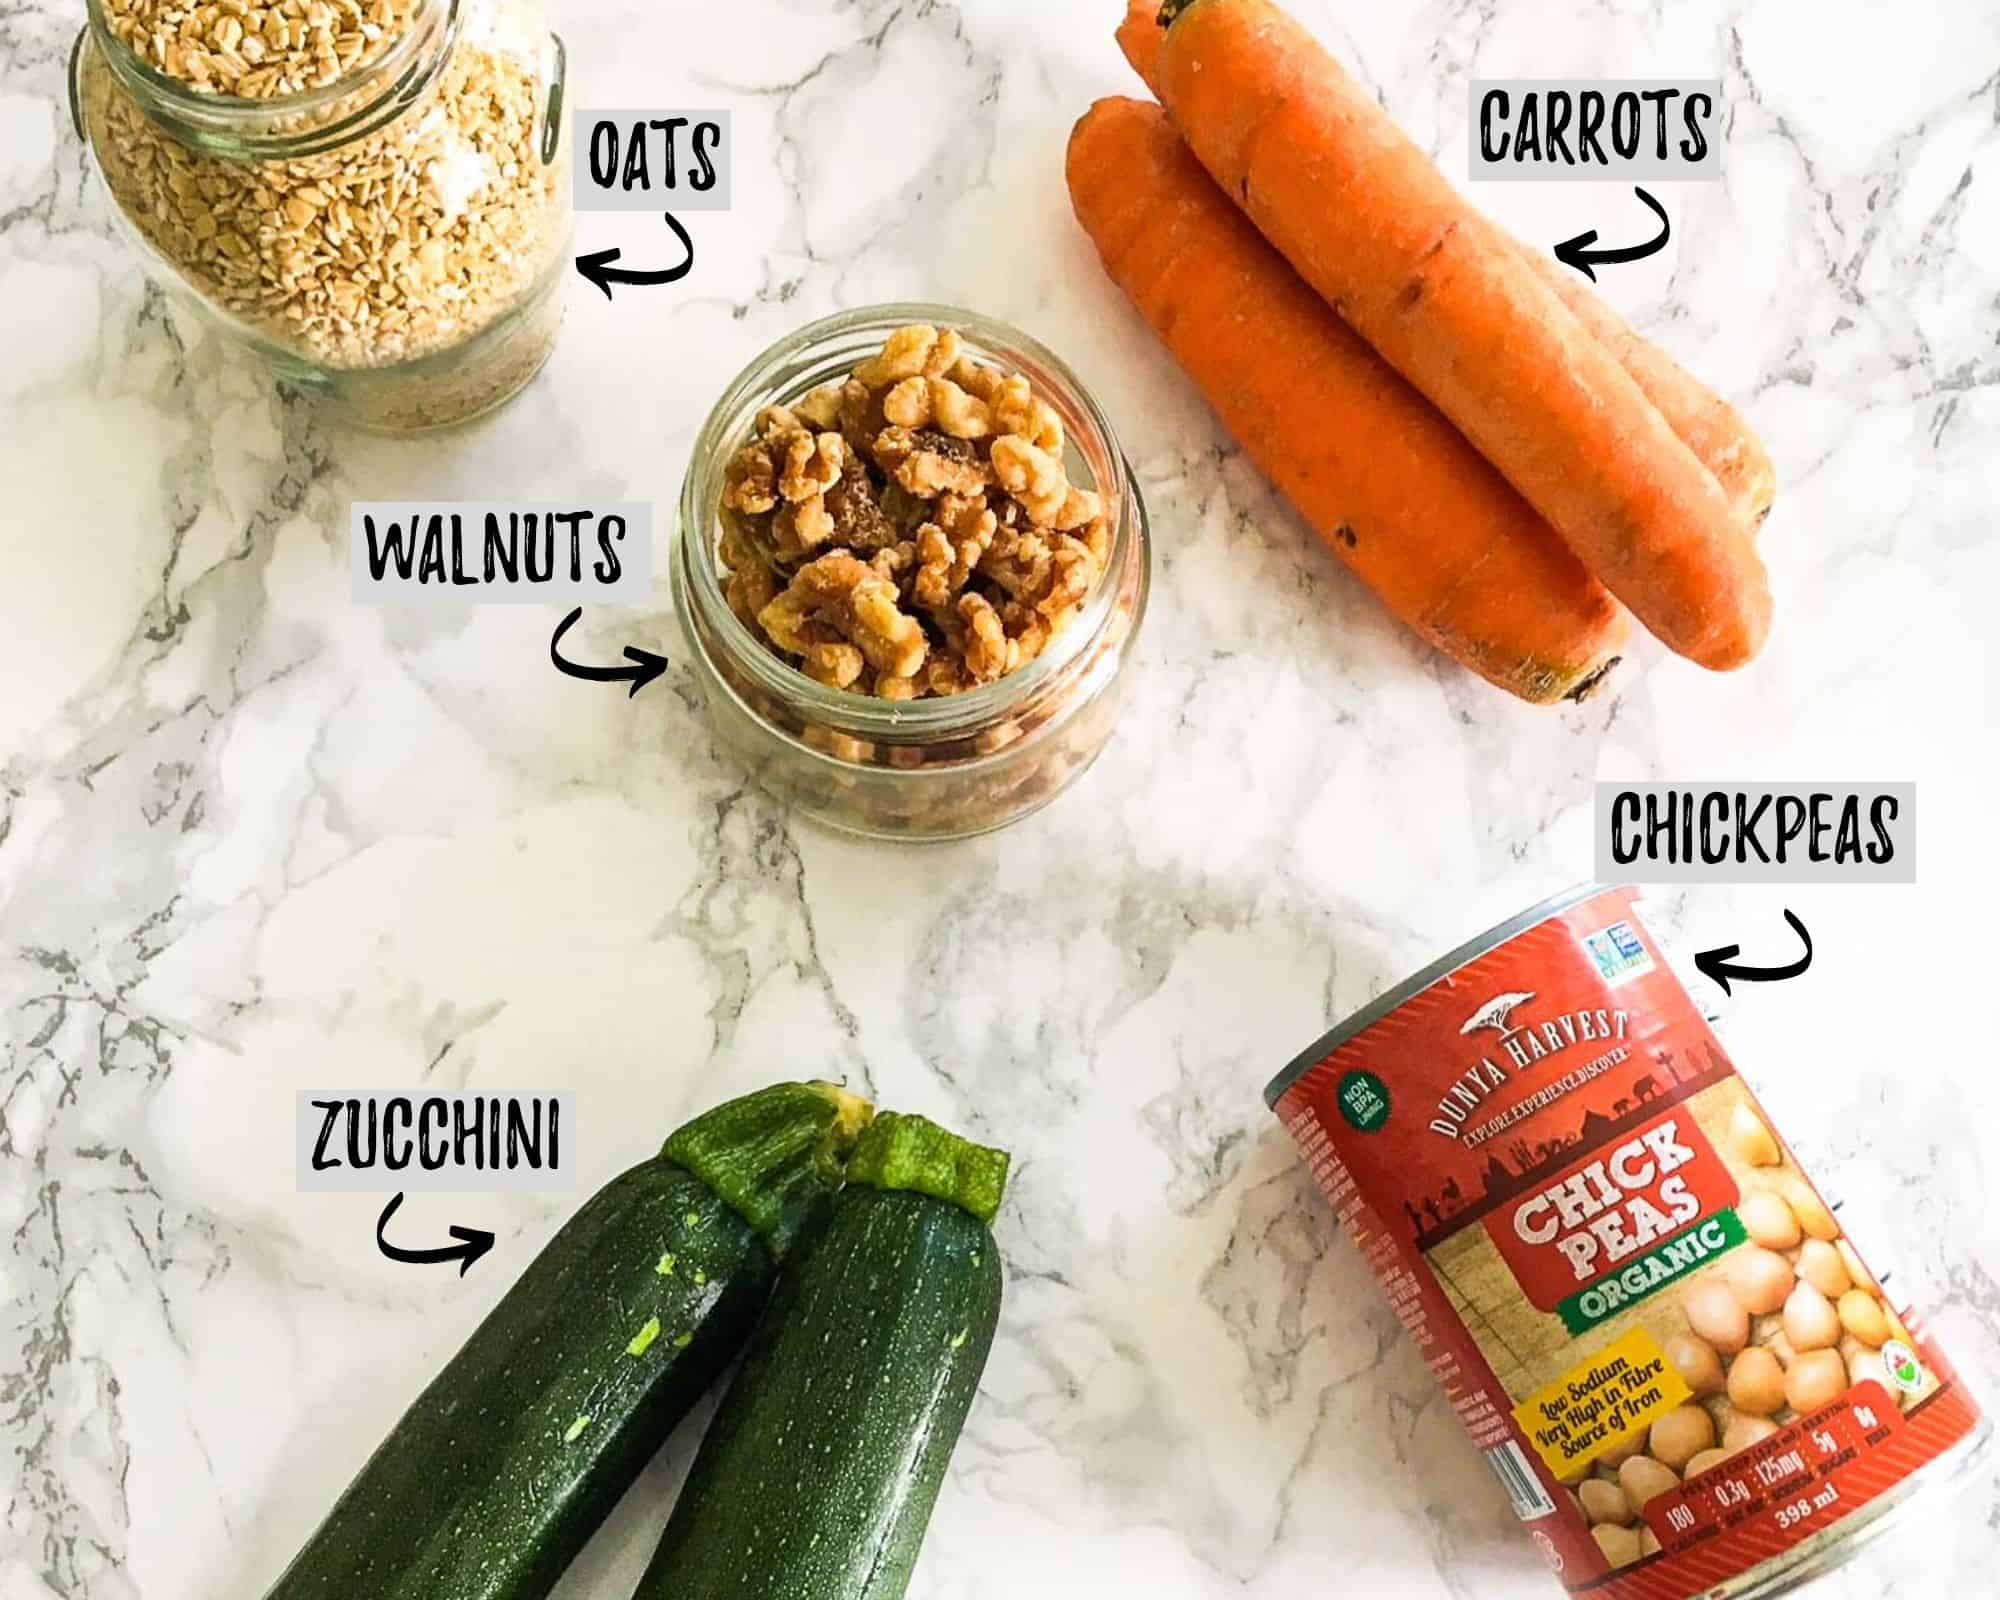 carrots, zucchini, can of chickpeas, jar of walnuts and jar of oats on marble counter